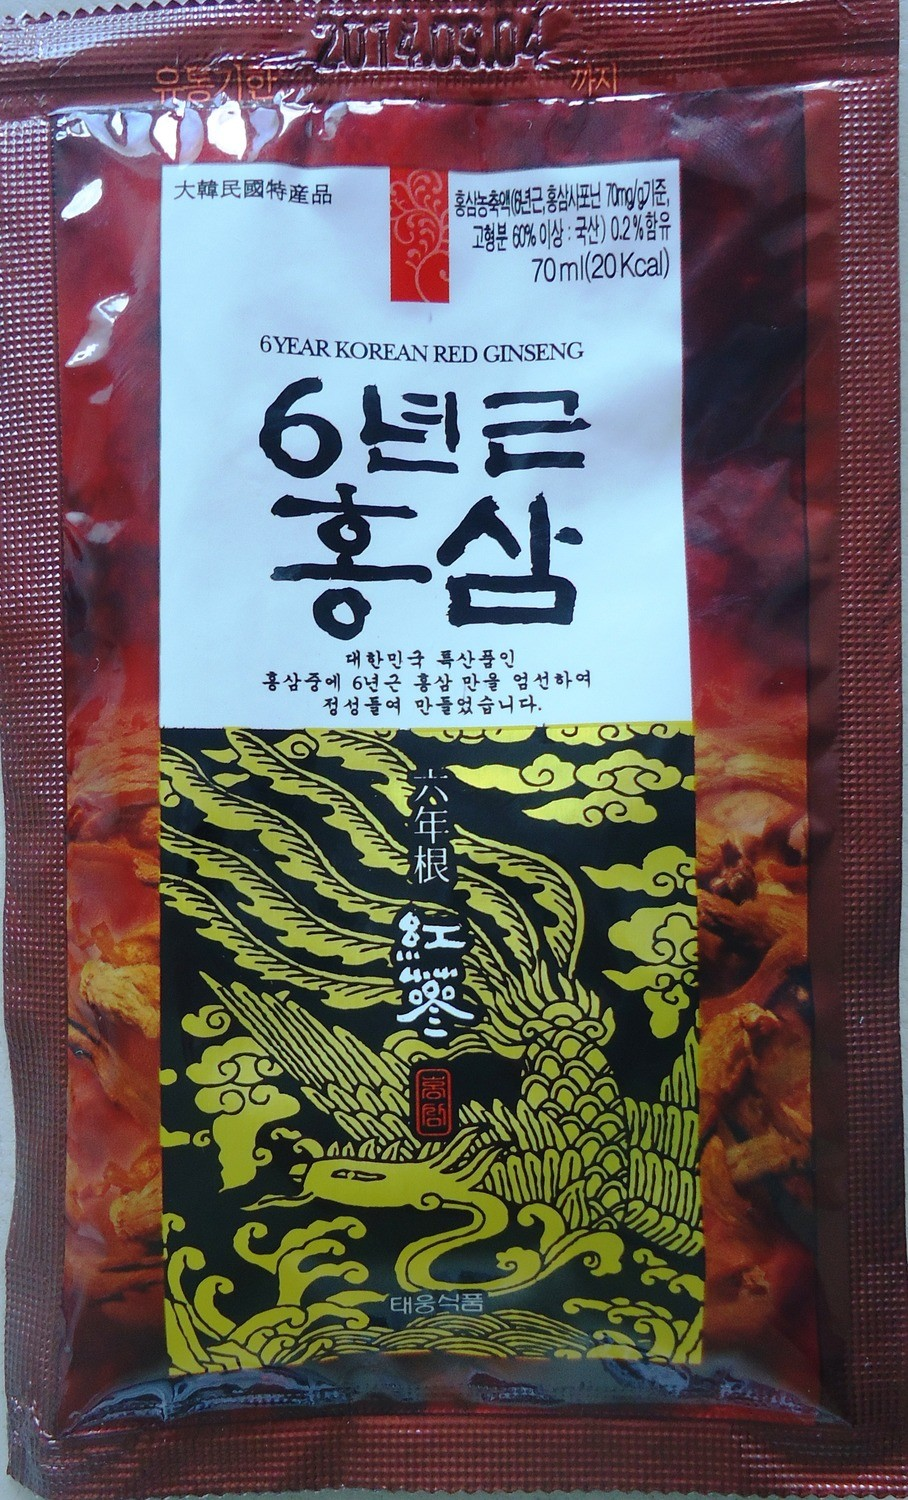 6 year Korean Red Ginseng Tonic in a sachet (70 ml)